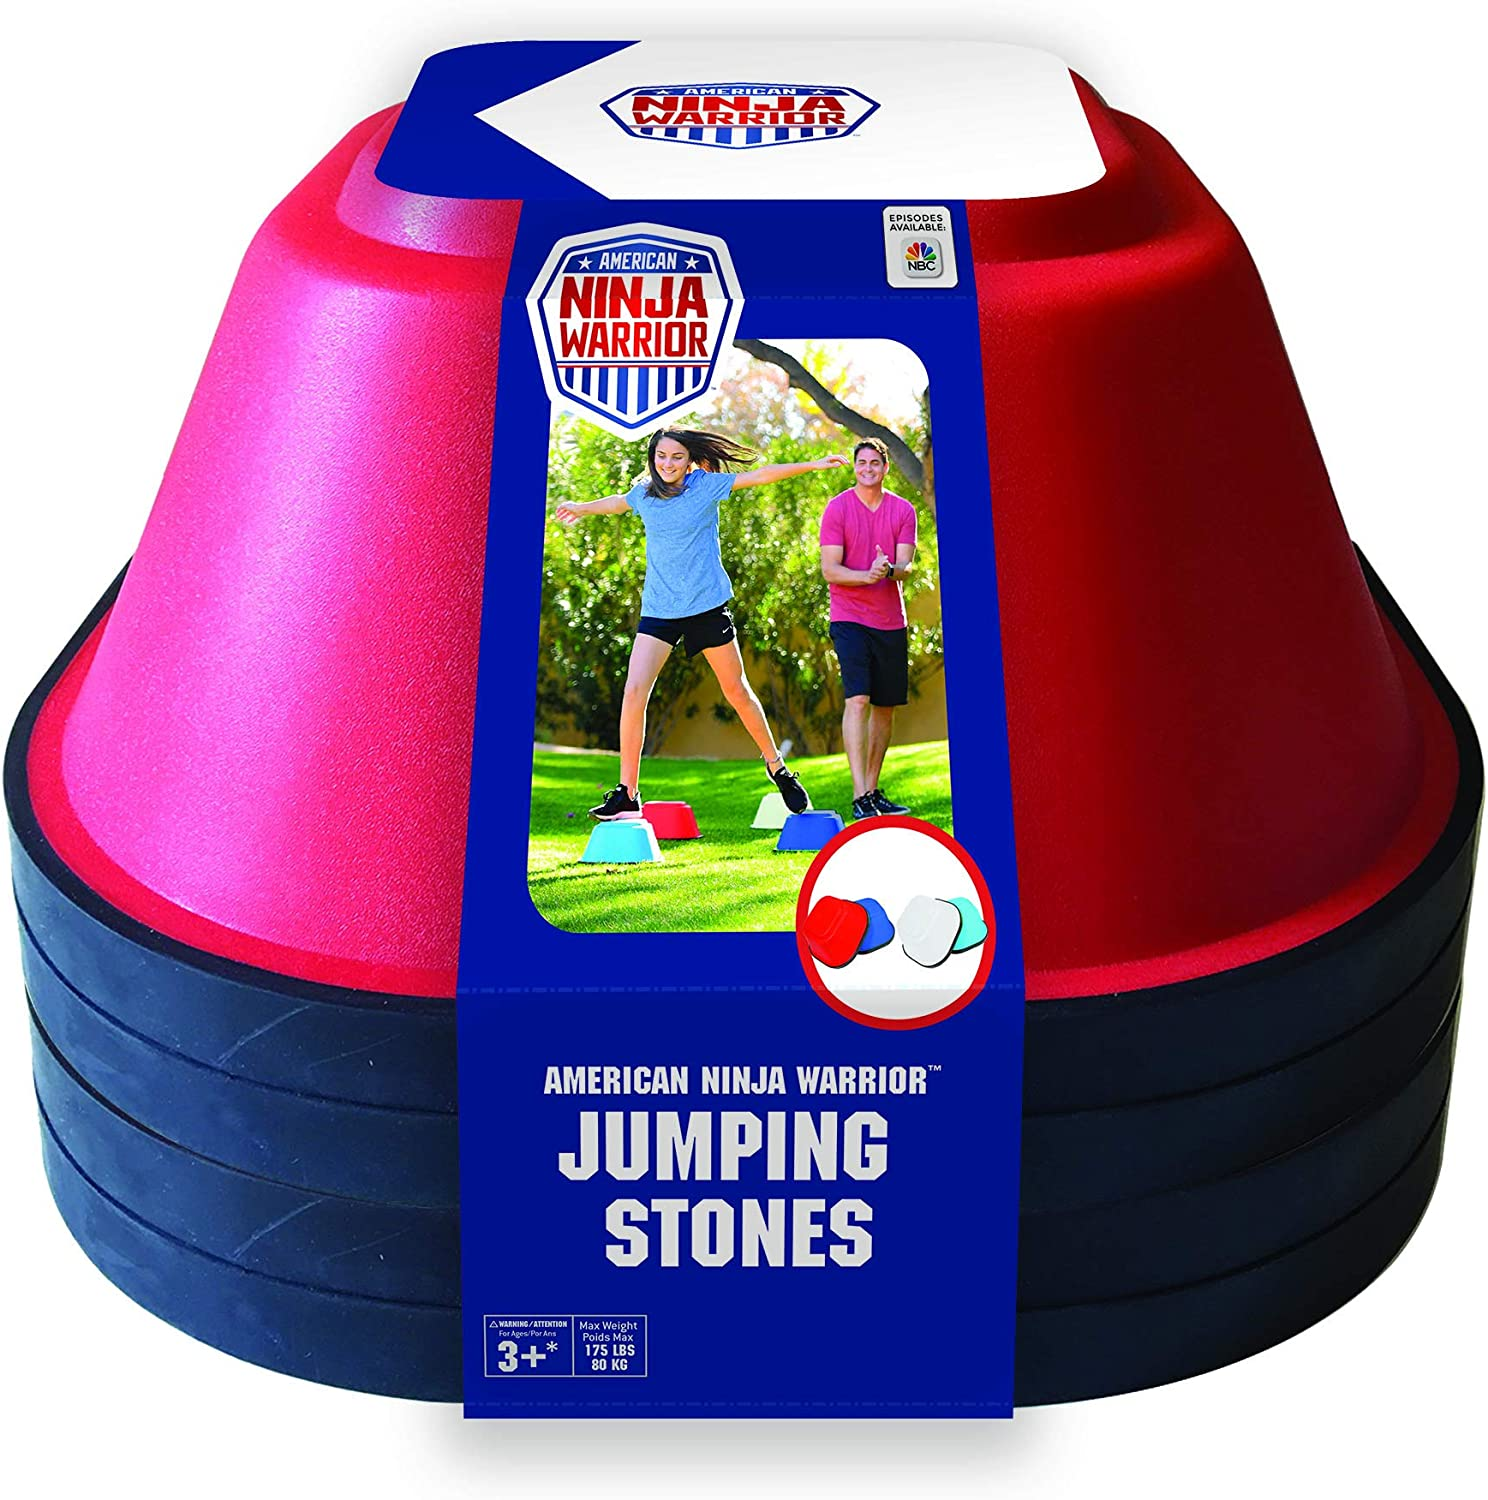 ANW American Ninja Warrior - Jumping Stones - 4 Pc. (Ninja Training, Backyard Obstacle Course, Jump Training)